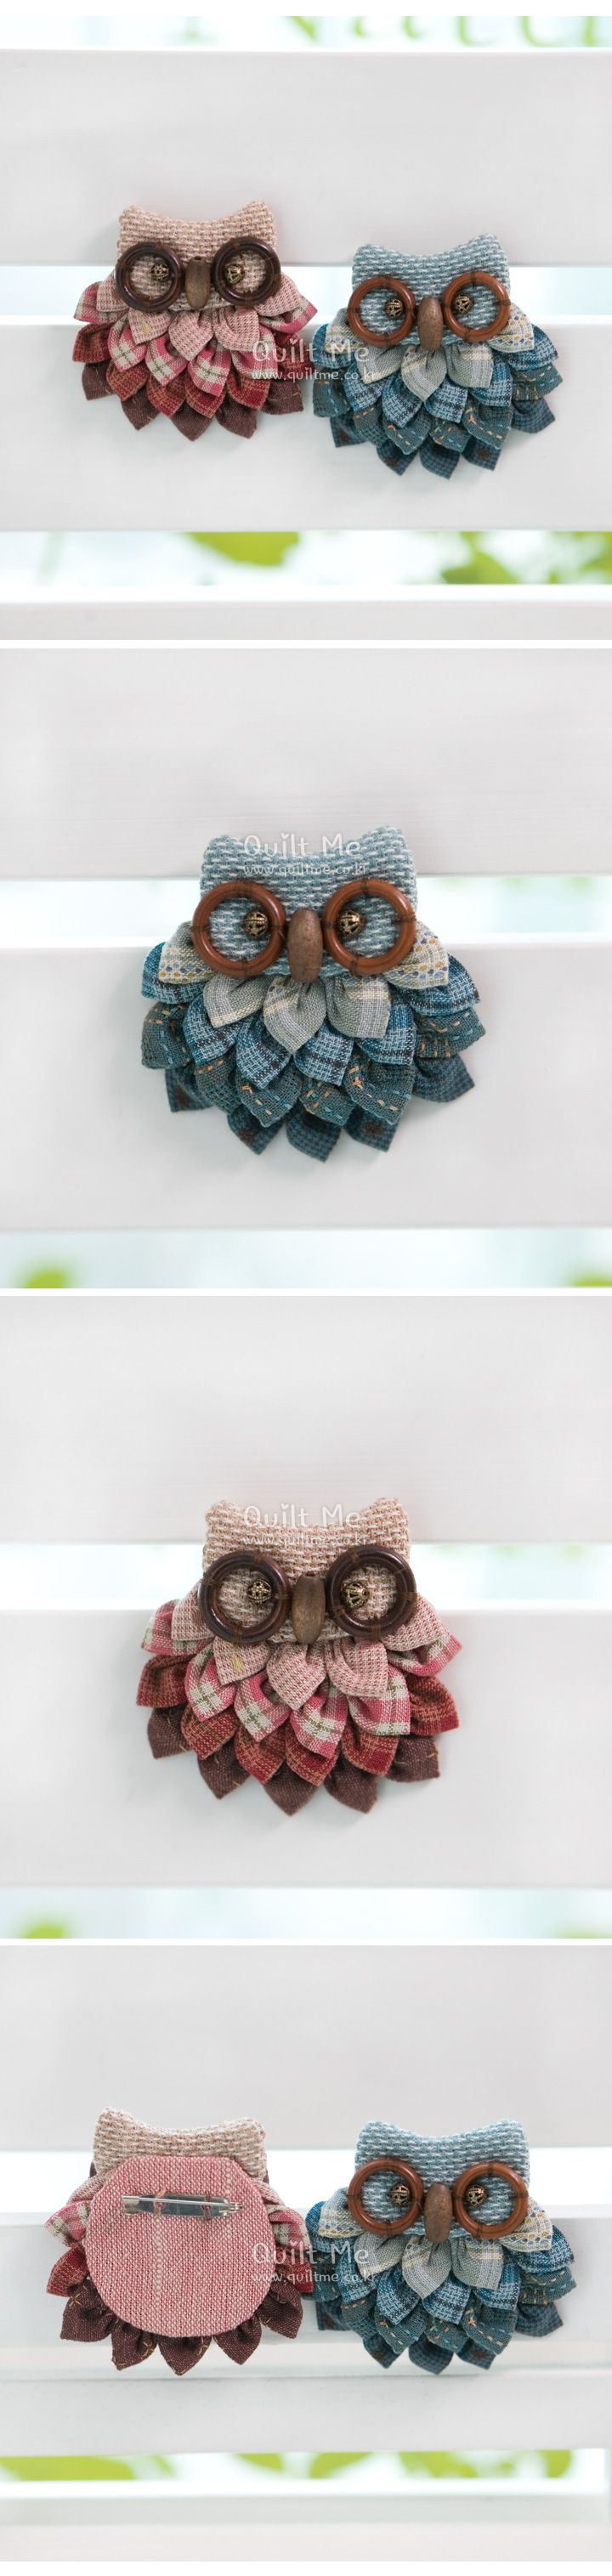 How cute are these little owls.